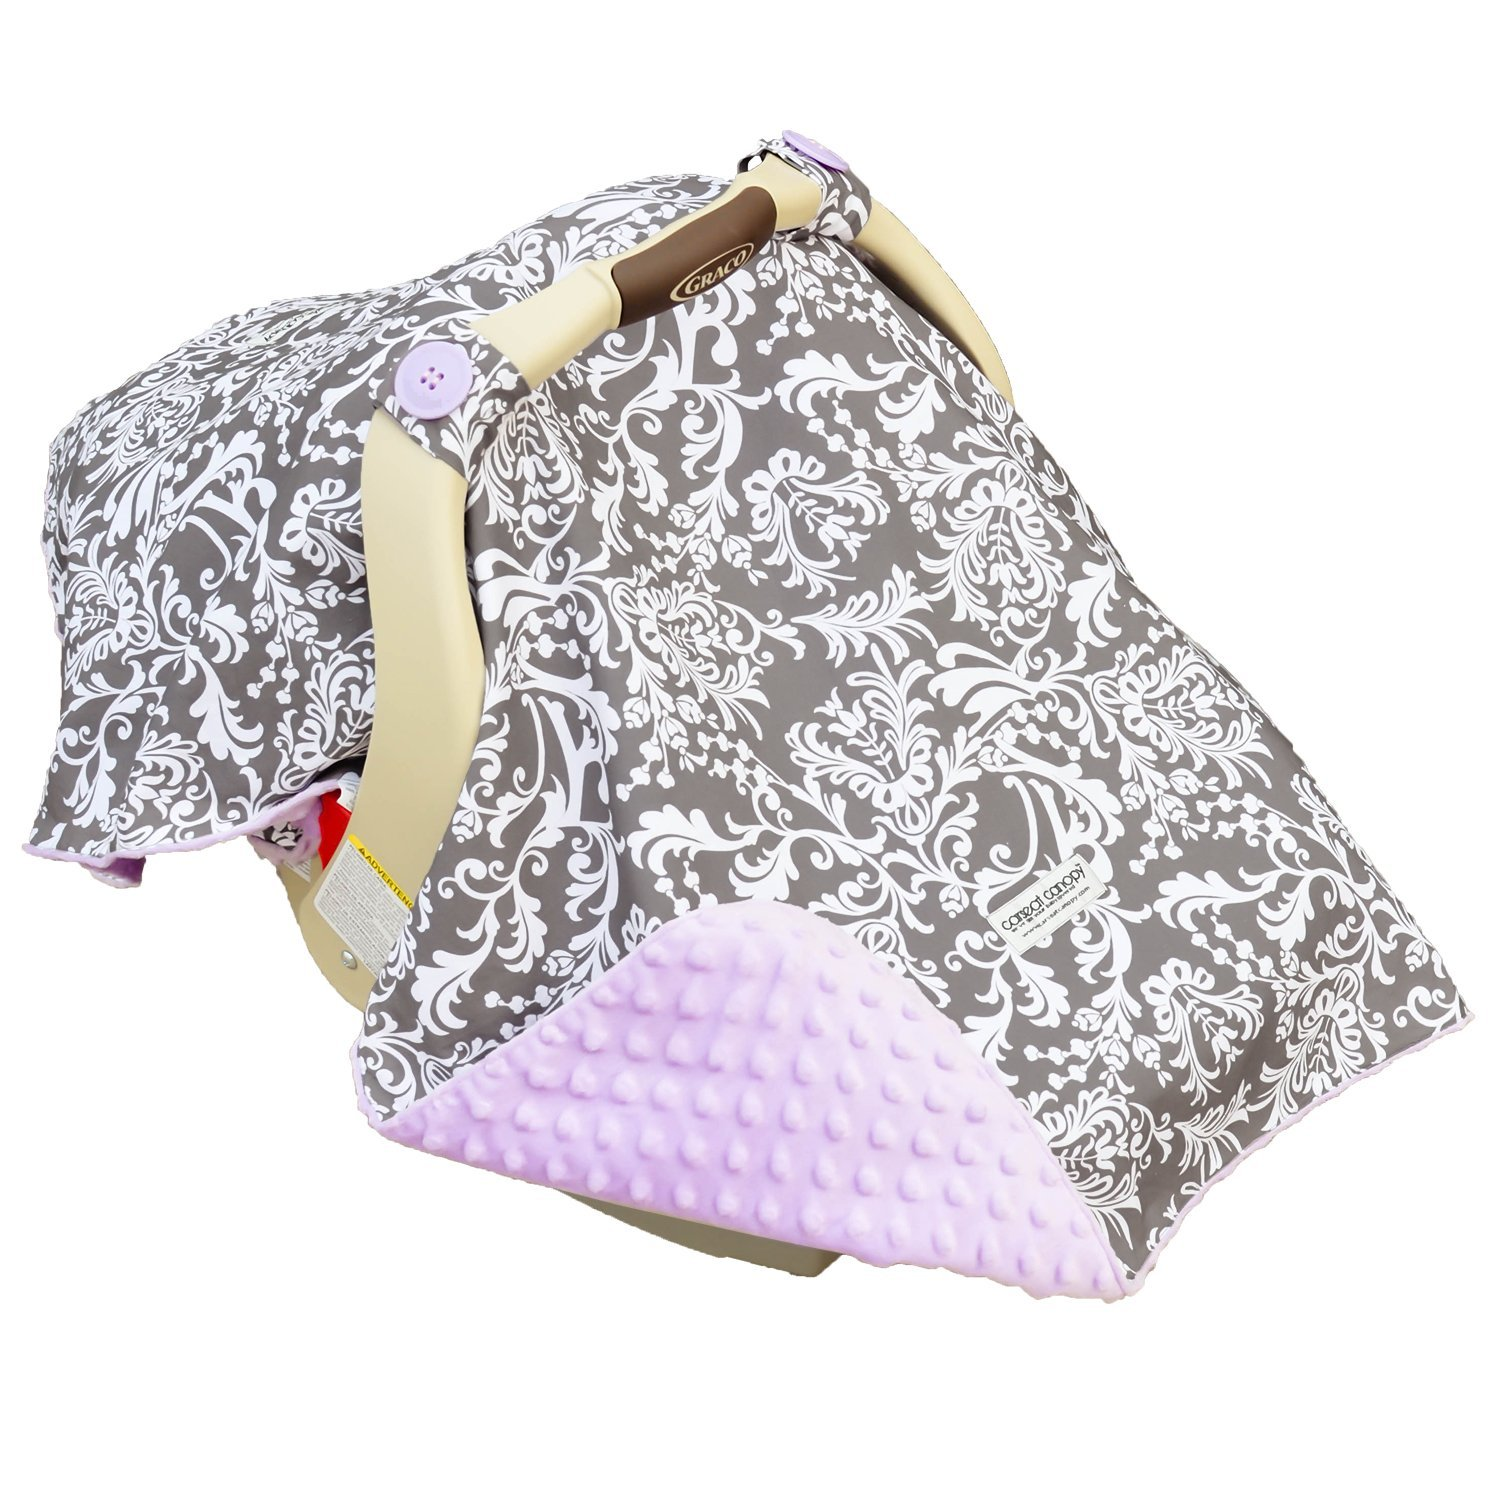 Carseat Canopy 5 Pc Whole Caboodle Baby Car Seat Cover Set No Included Minky Belle